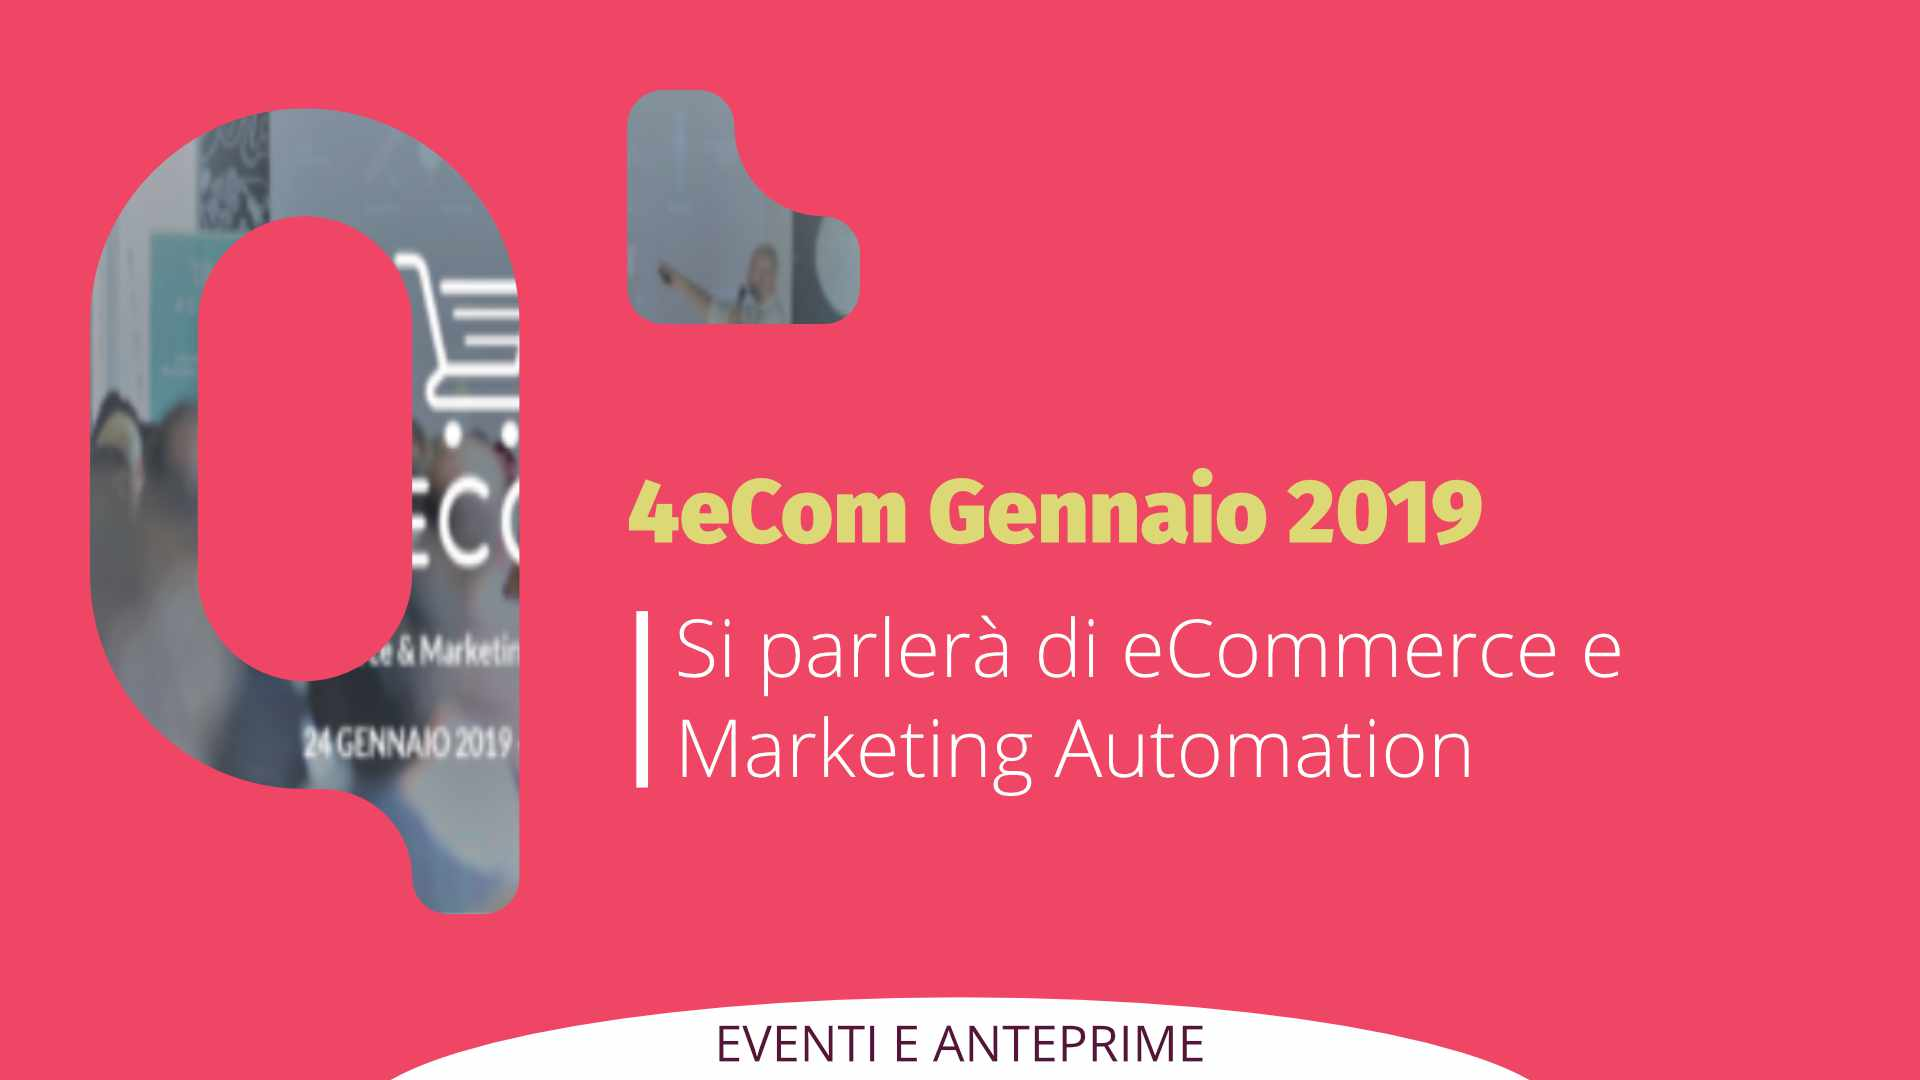 4eCom 2019: l'Evento che parla di eCommerce e Marketing Automation